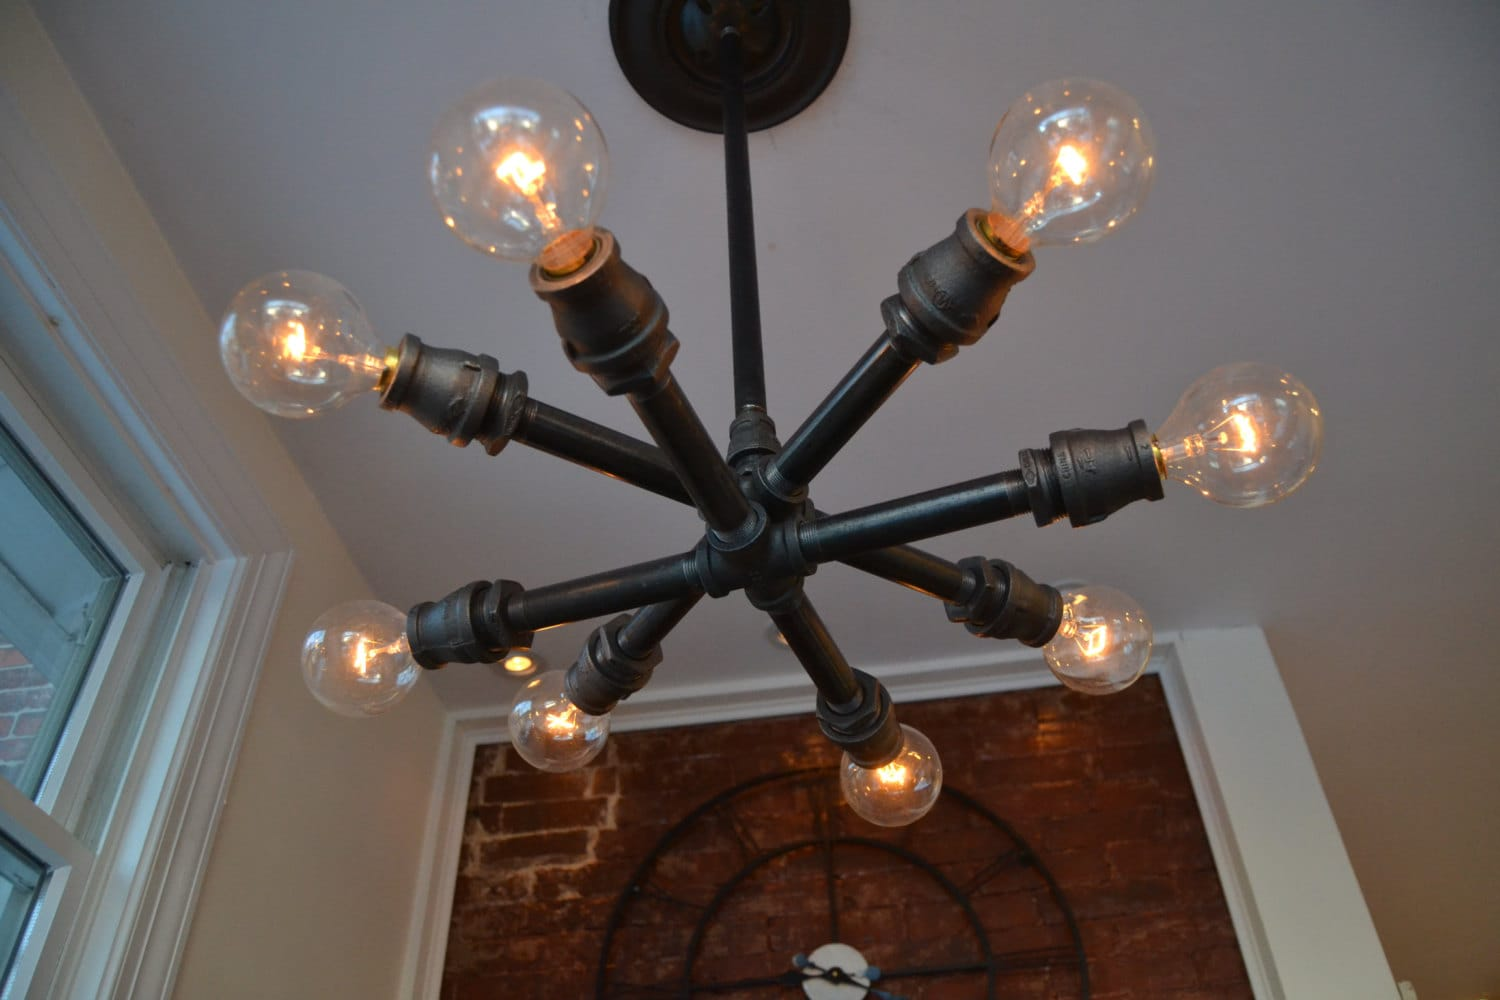 Ceiling Sputnik Fixture Steampunk Light Industrial Light